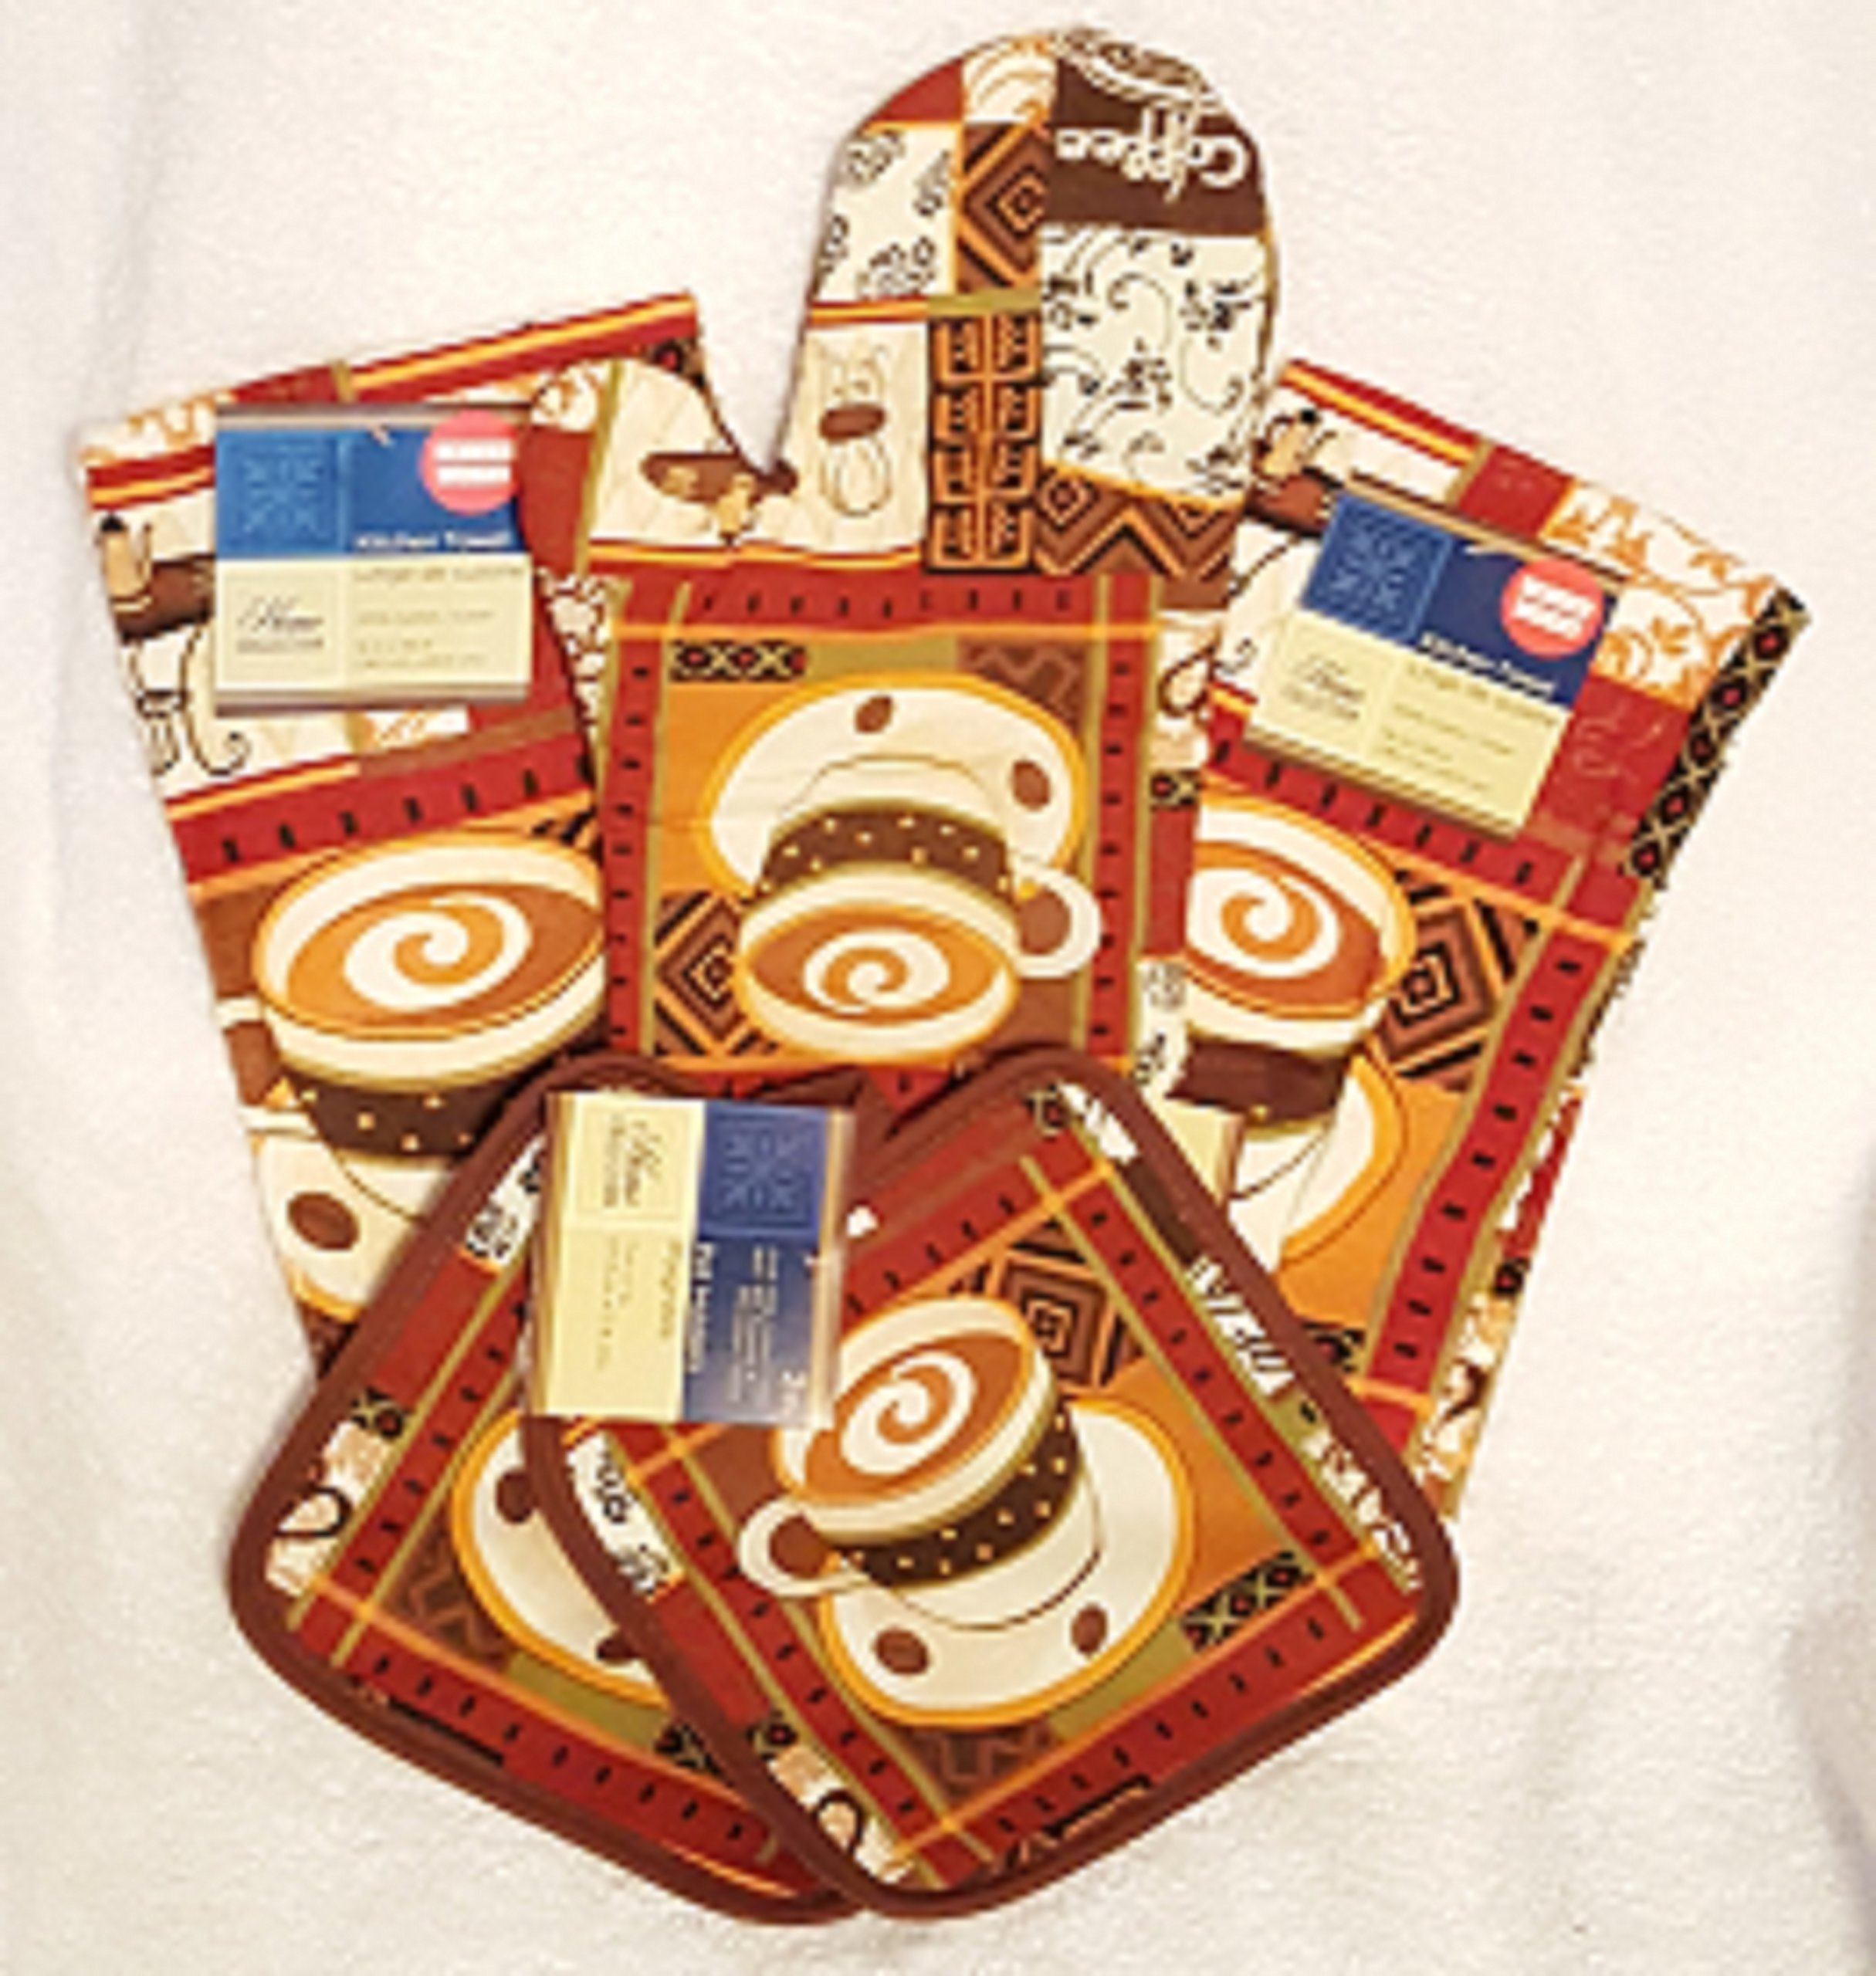 Coffee Theme Kitchen Linen Set - 5 Piece Set (Includes: One Oven Mitt, Two Dish Towels, and Two Pot Holders)